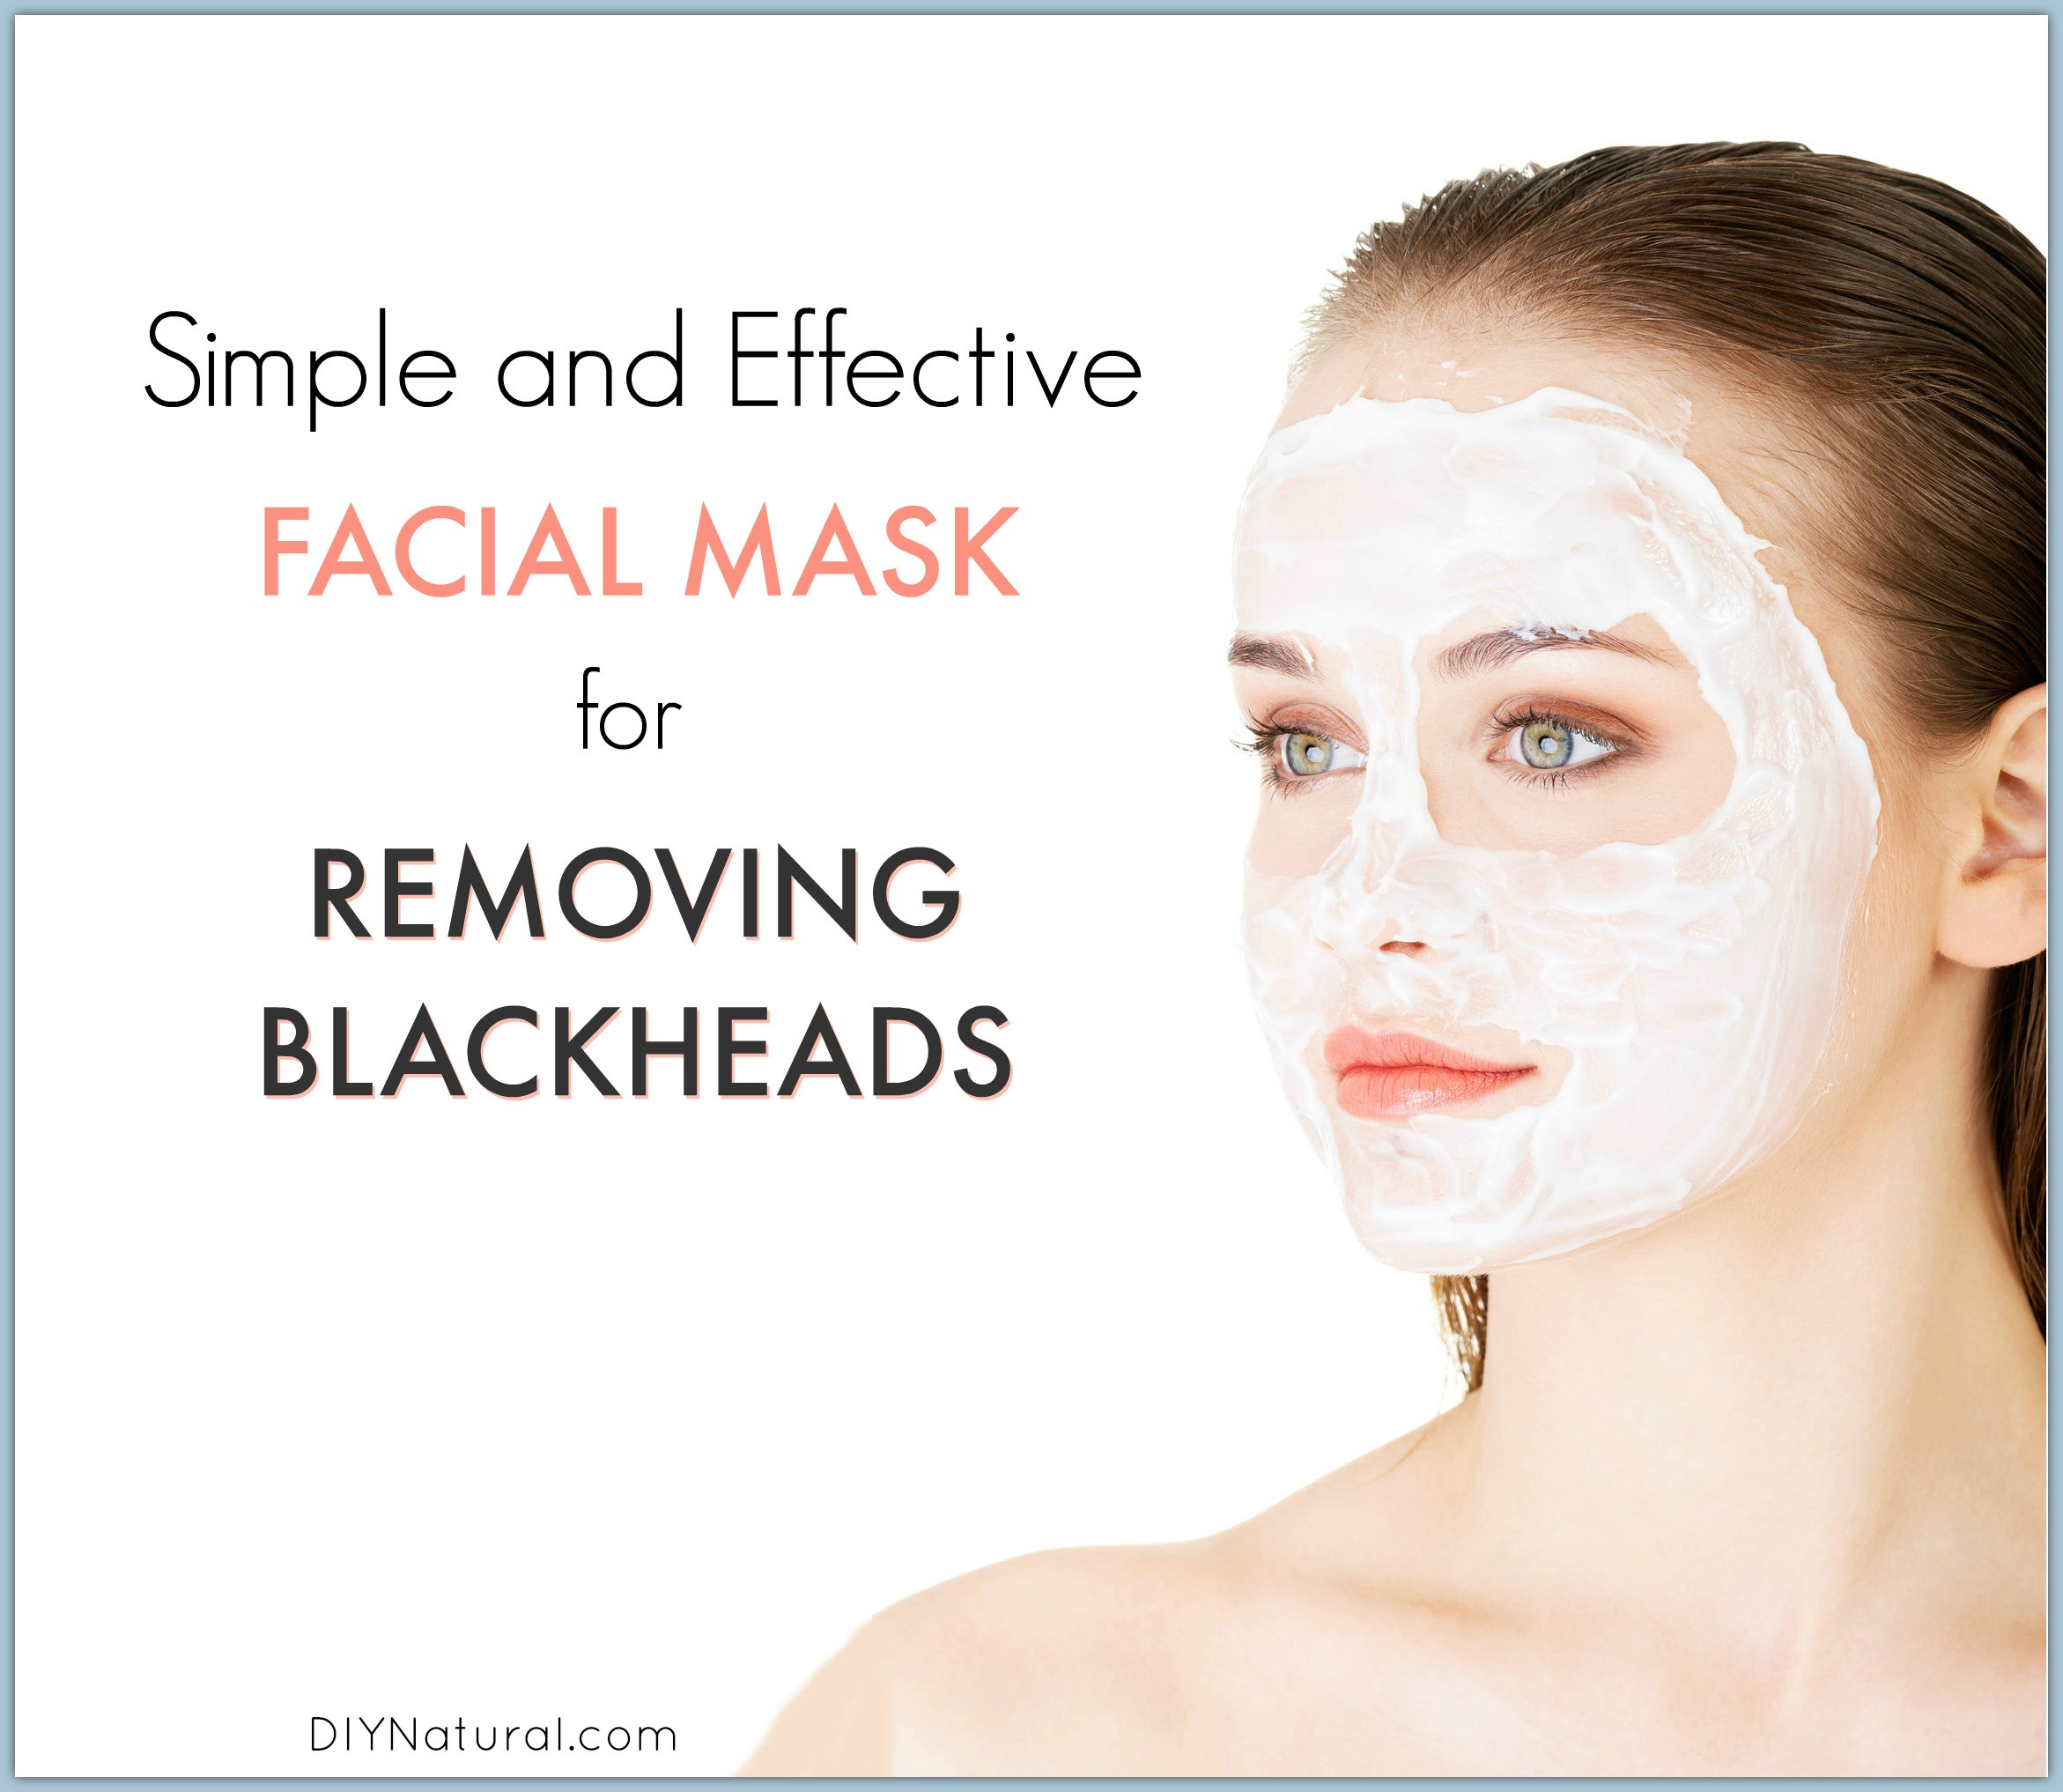 Best ideas about DIY Masks For Blackheads . Save or Pin Blackheads A Quick and Easy Homemade Blackhead Mask Now.